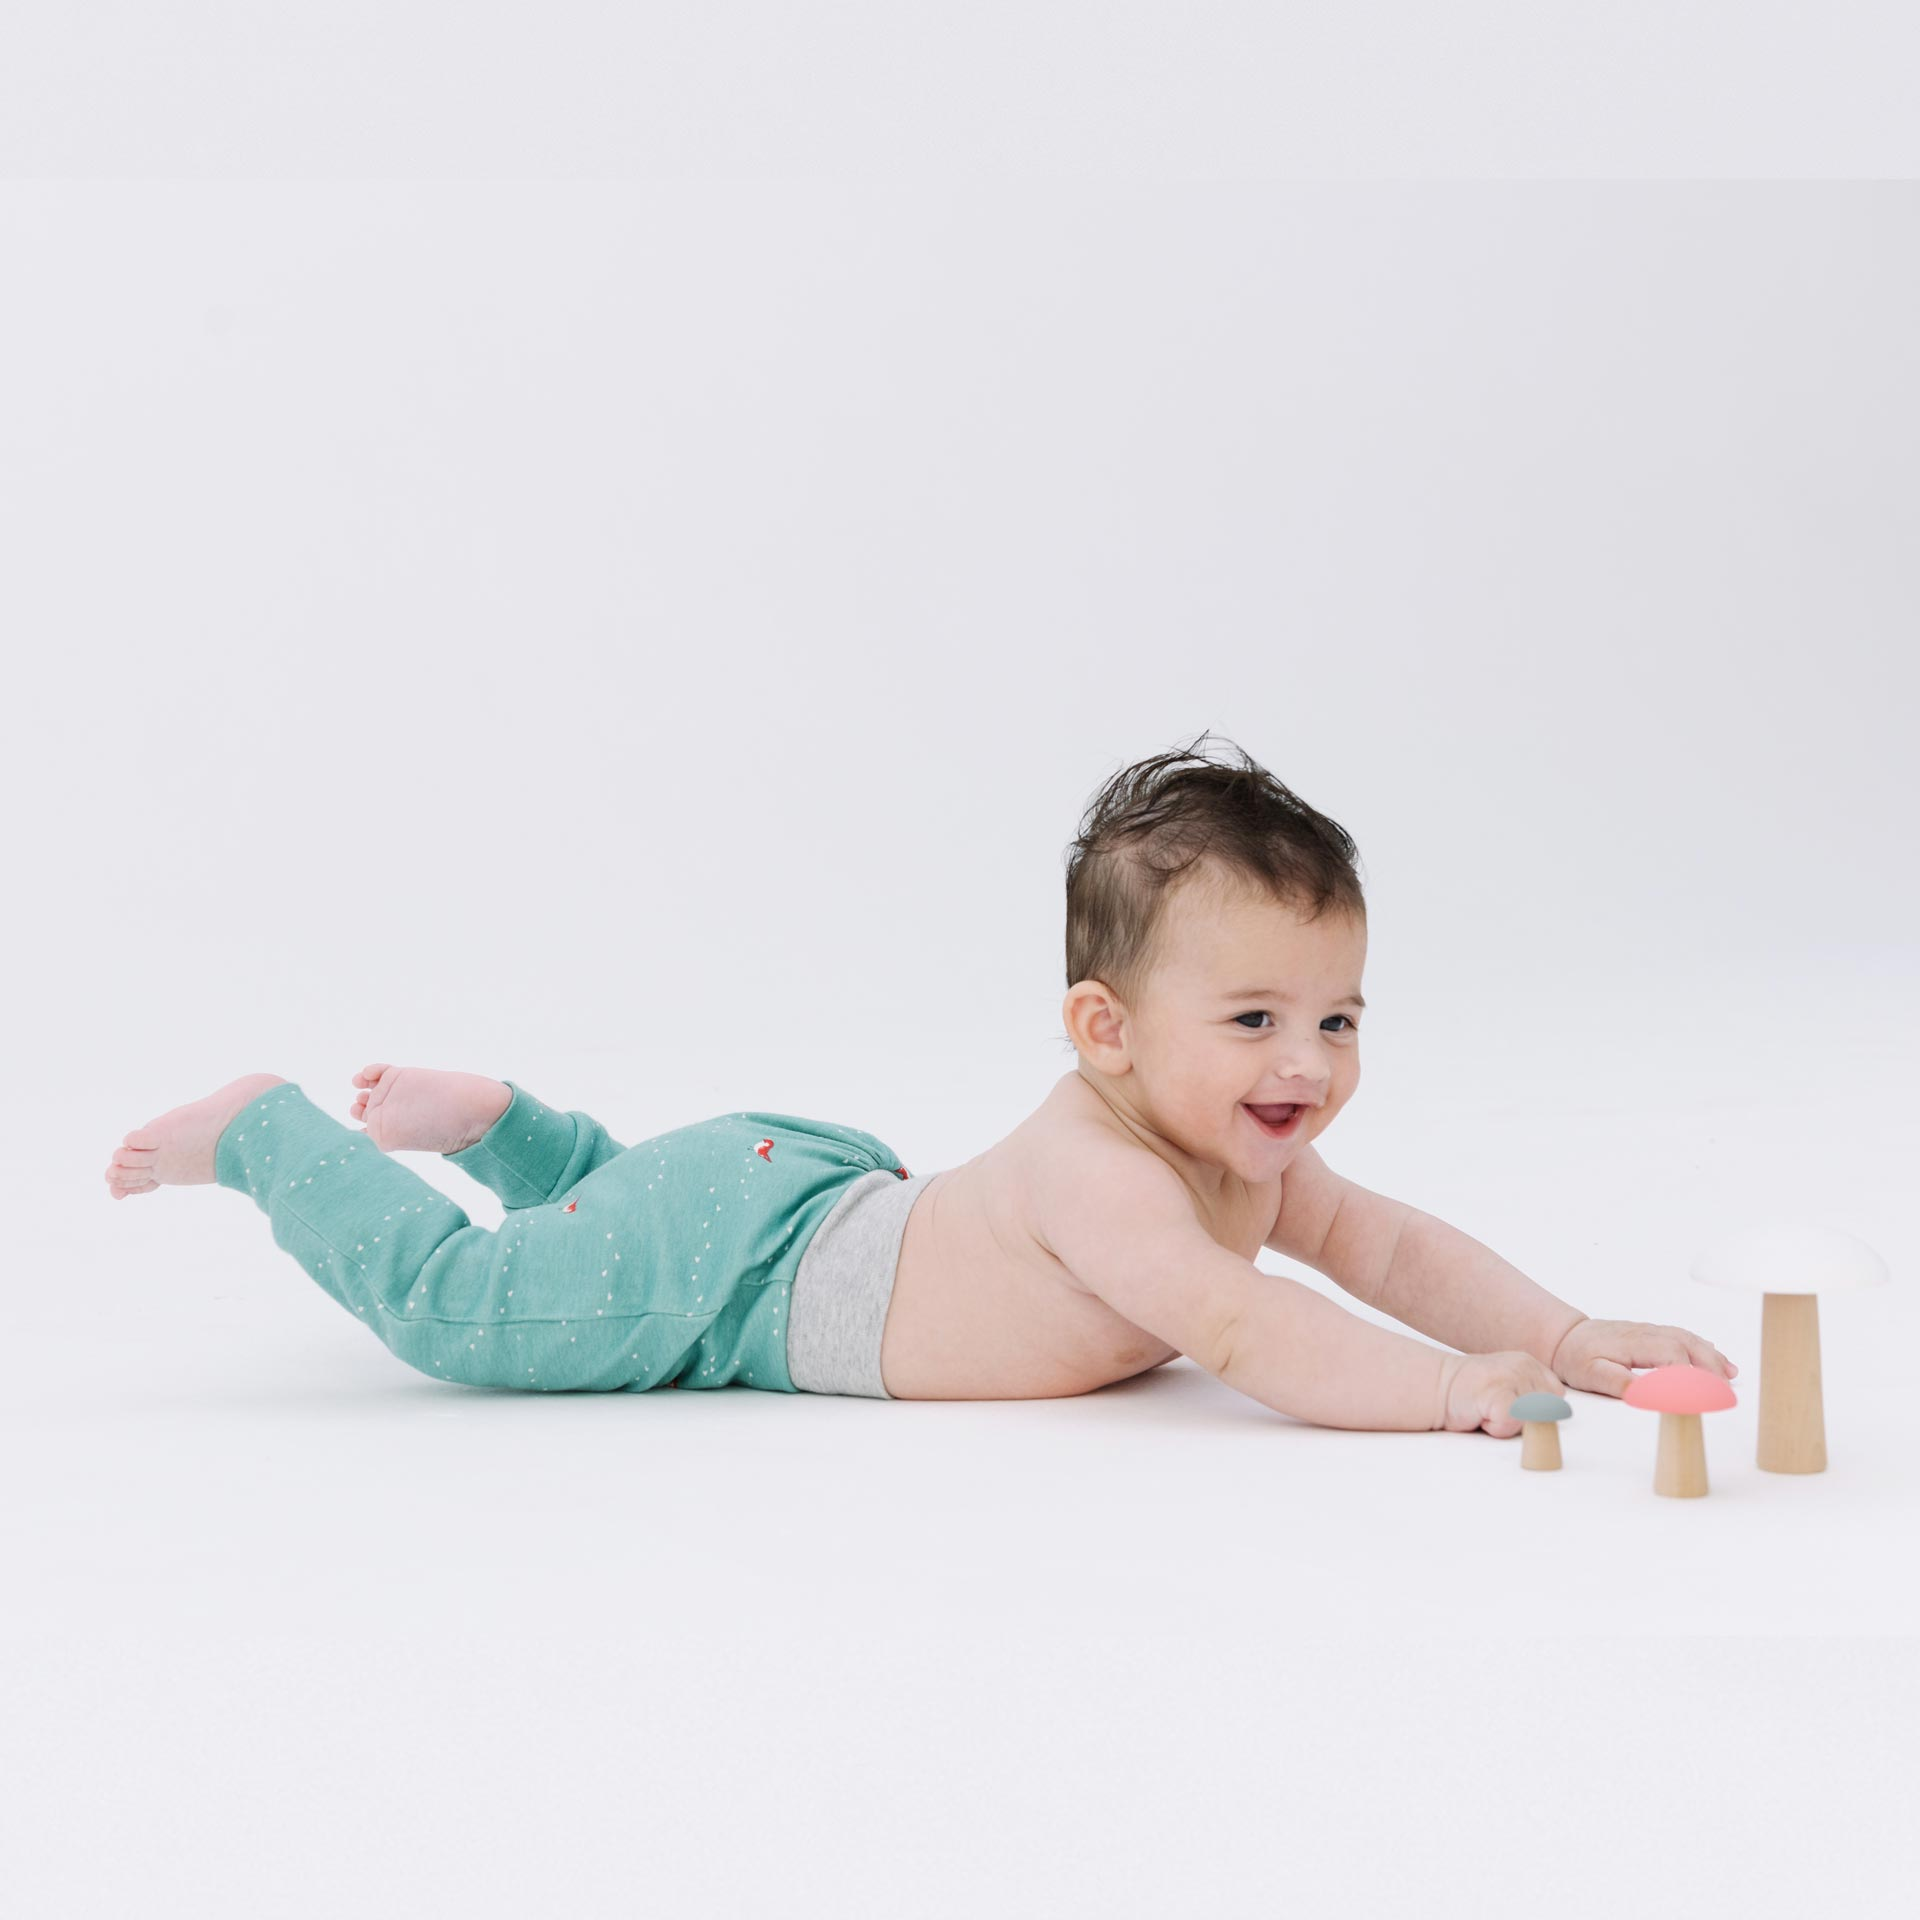 Baby with green pants playing on the floor